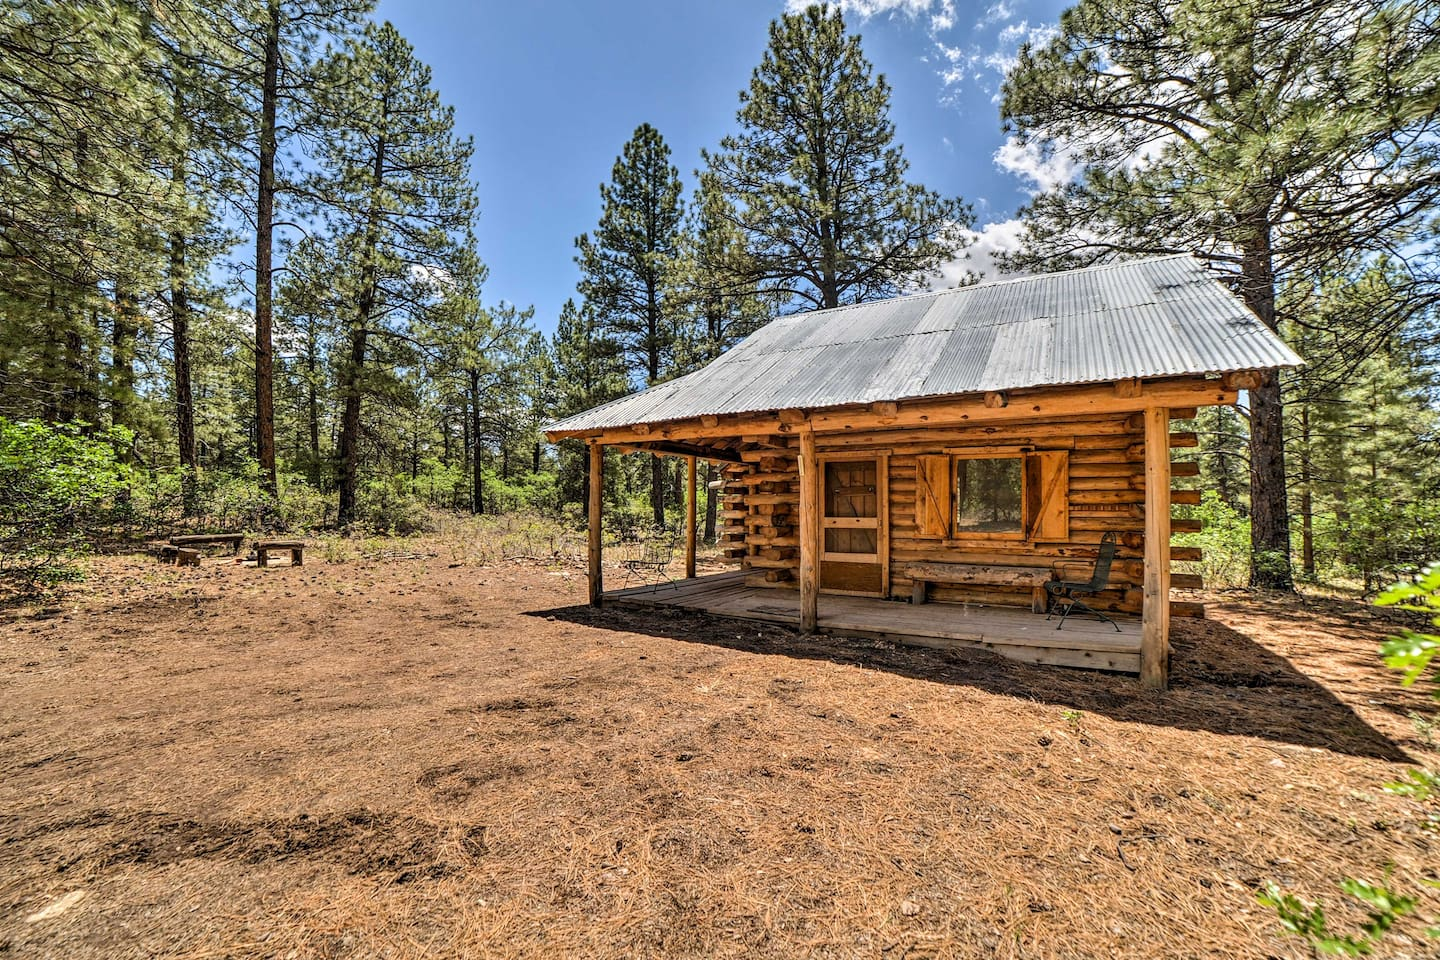 Sneak away to Lost Canyon Ranch and stay at this vacation rental cabin!